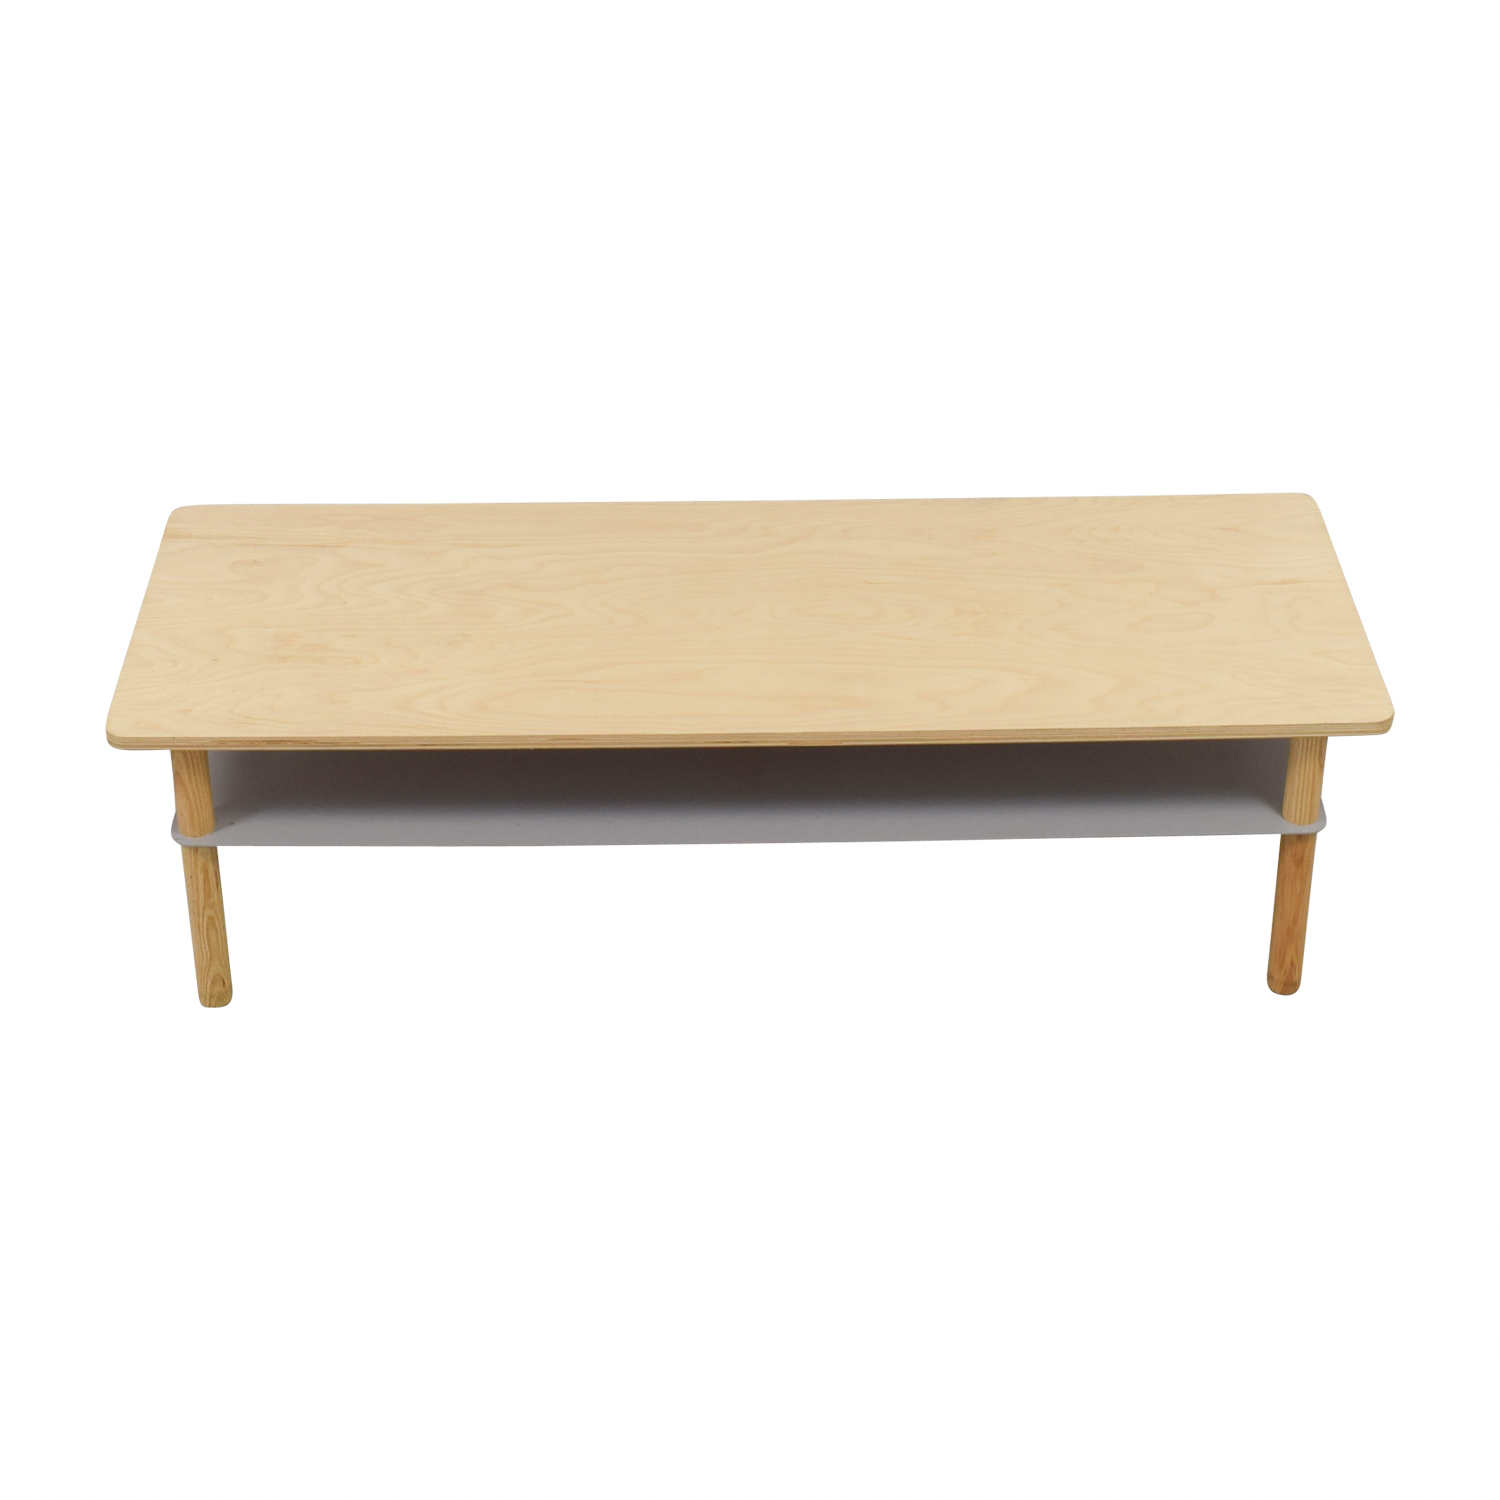 Greycork Greycork Felix Coffee Table Beige